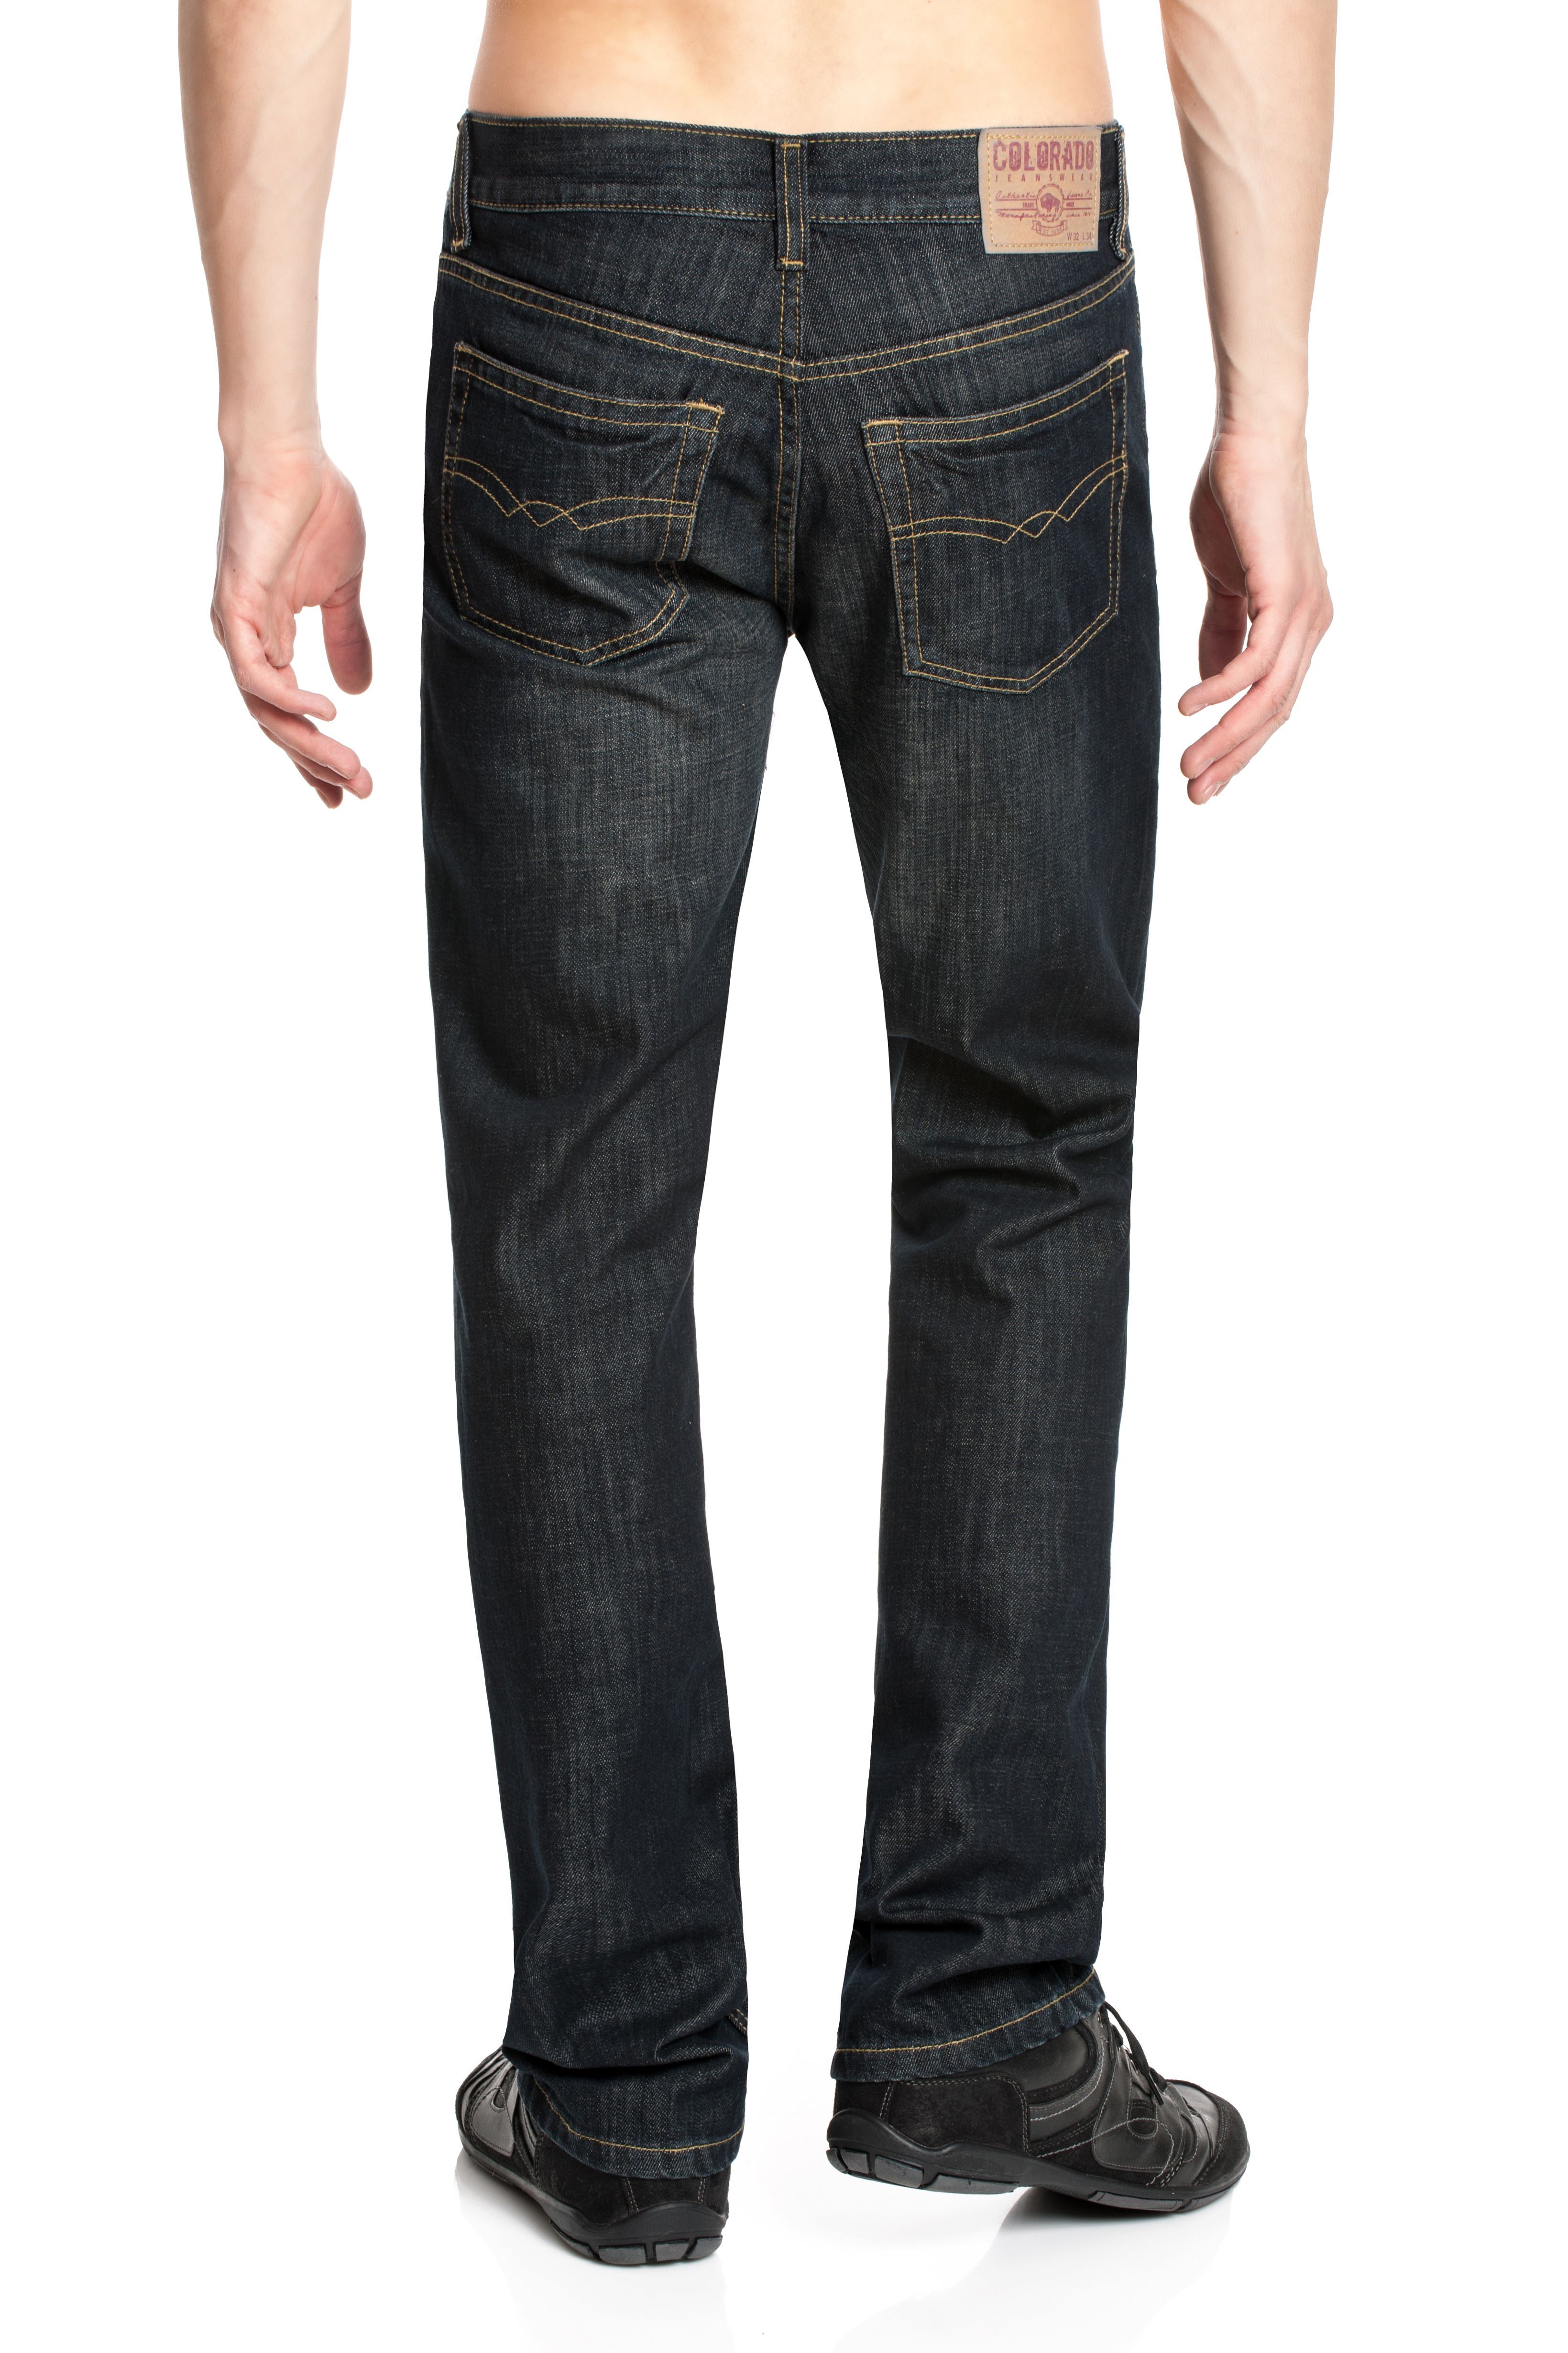 Colorado Jeans US First